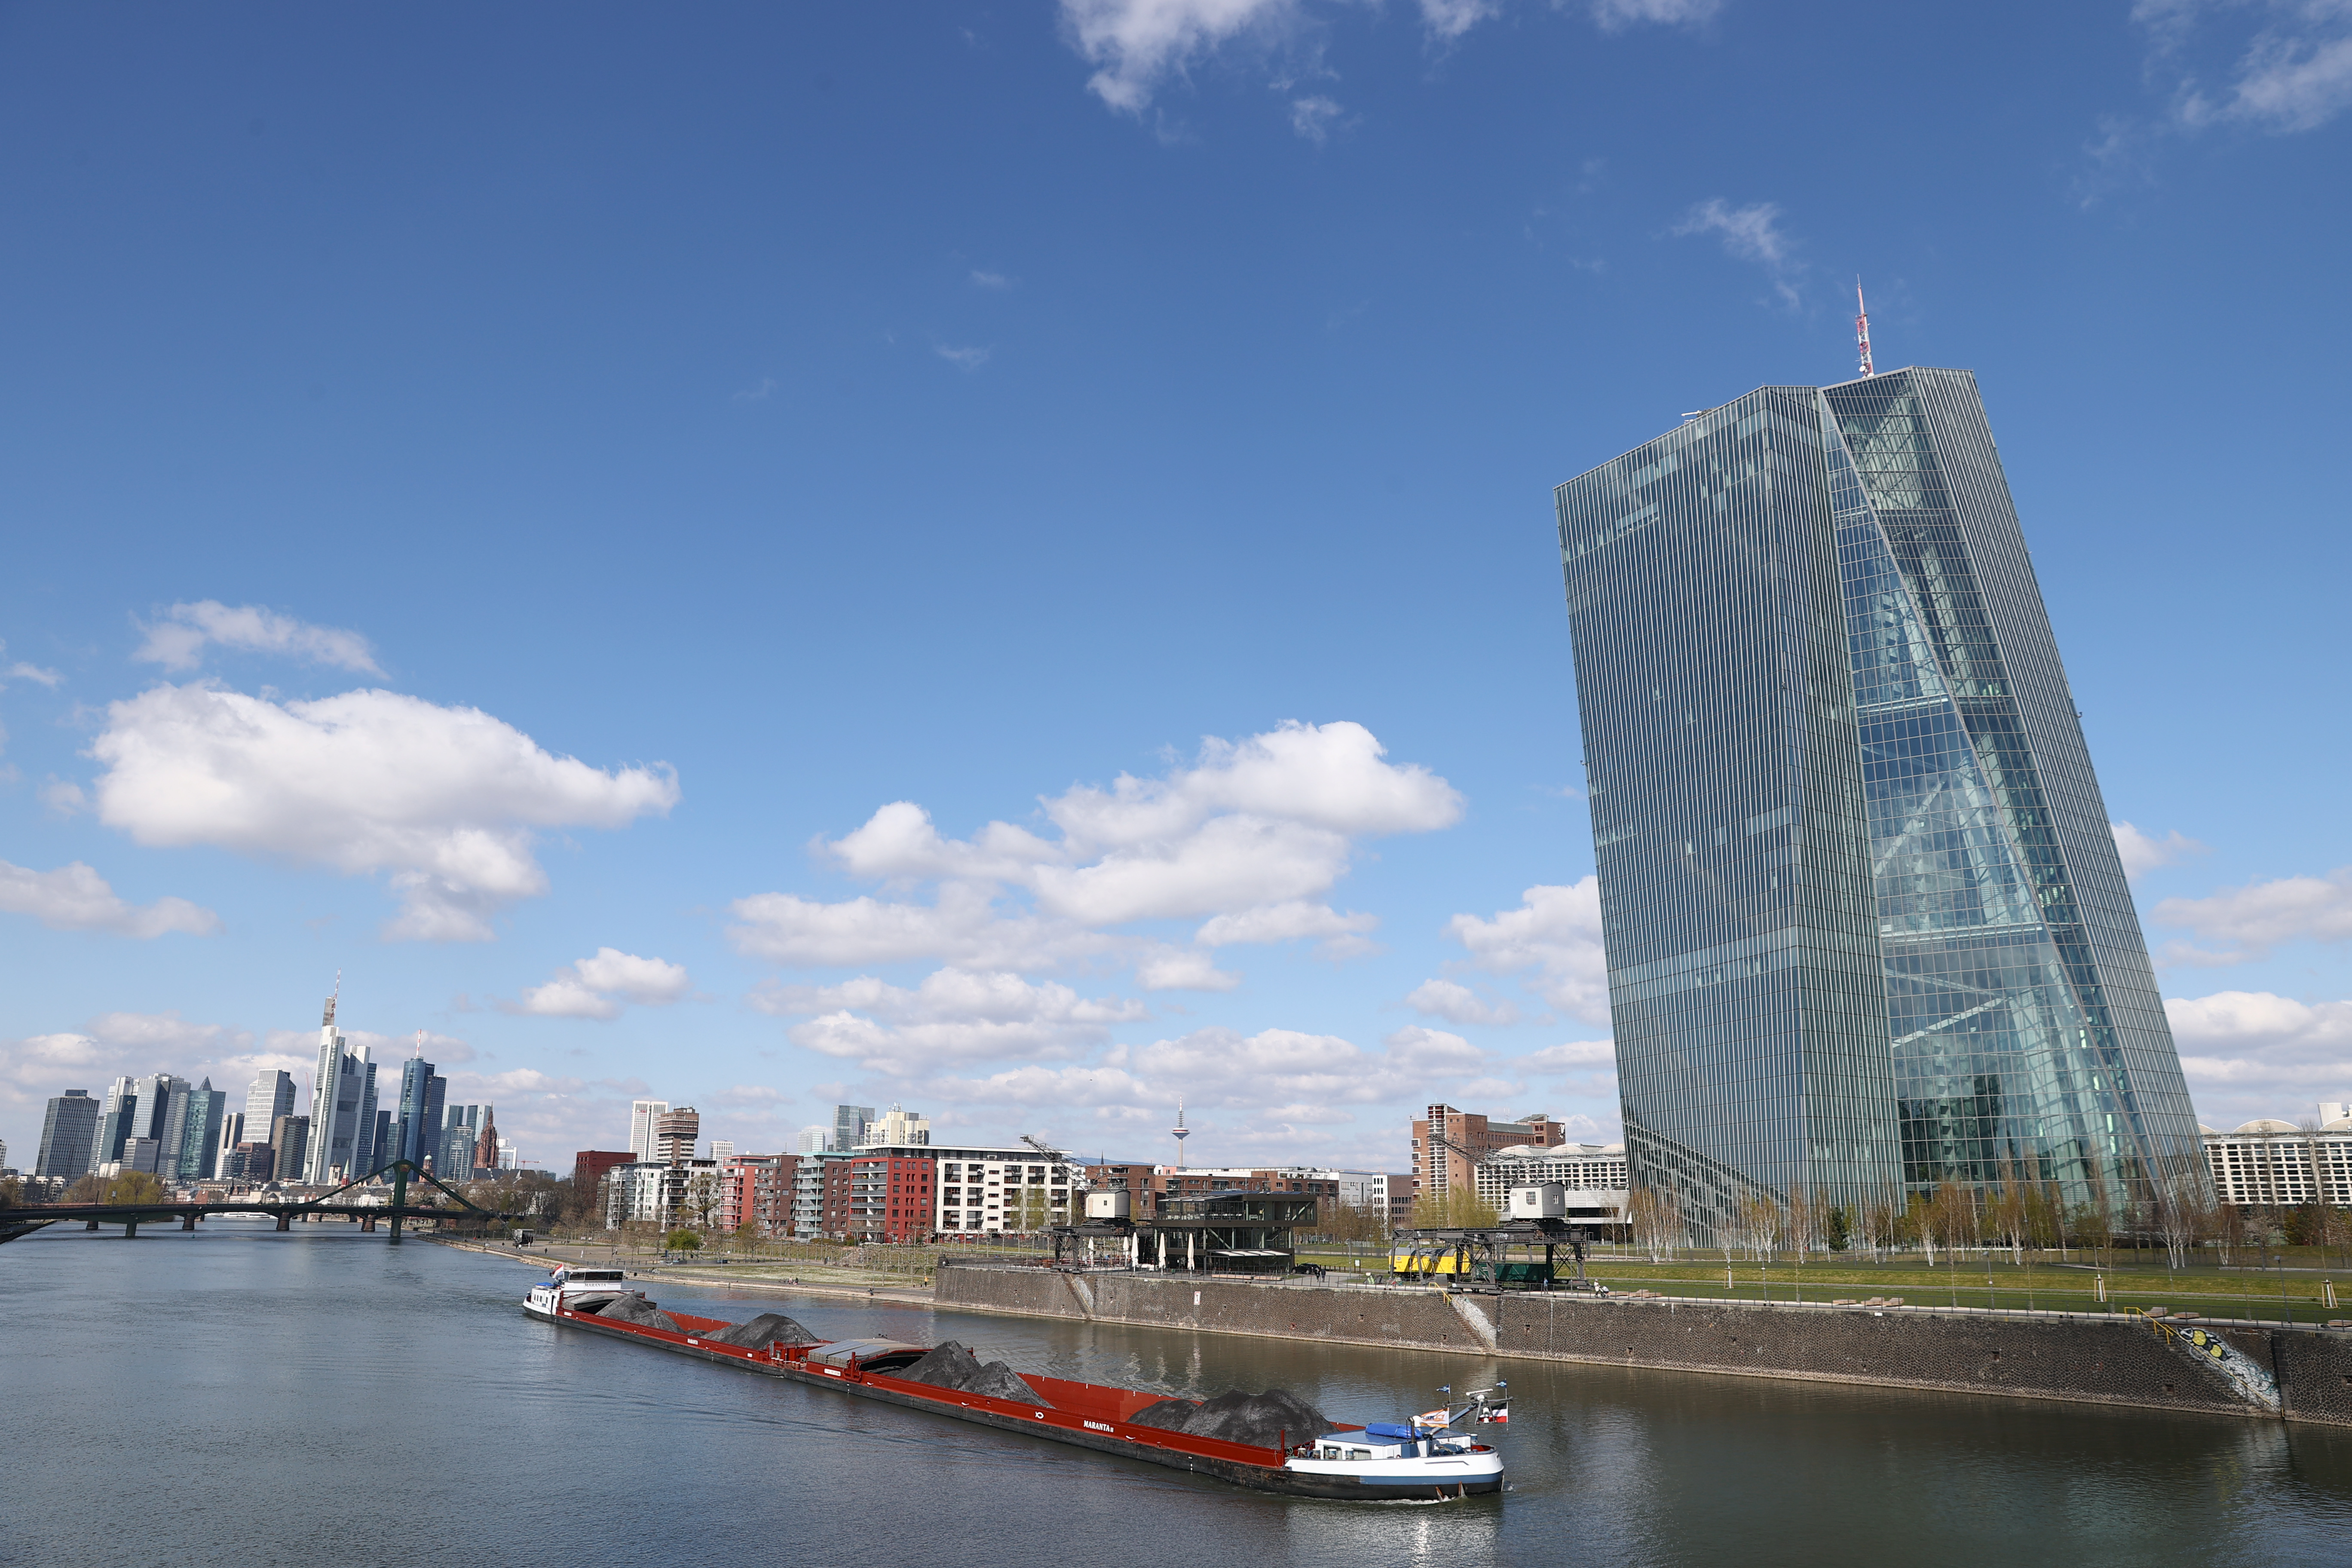 The skyline with its banking district and the European Central Bank (ECB) are seen, as the spread of the coronavirus disease (COVID-19) continues, in Frankfurt, Germany, March 31, 2020. REUTERS/Kai Pfaffenbach